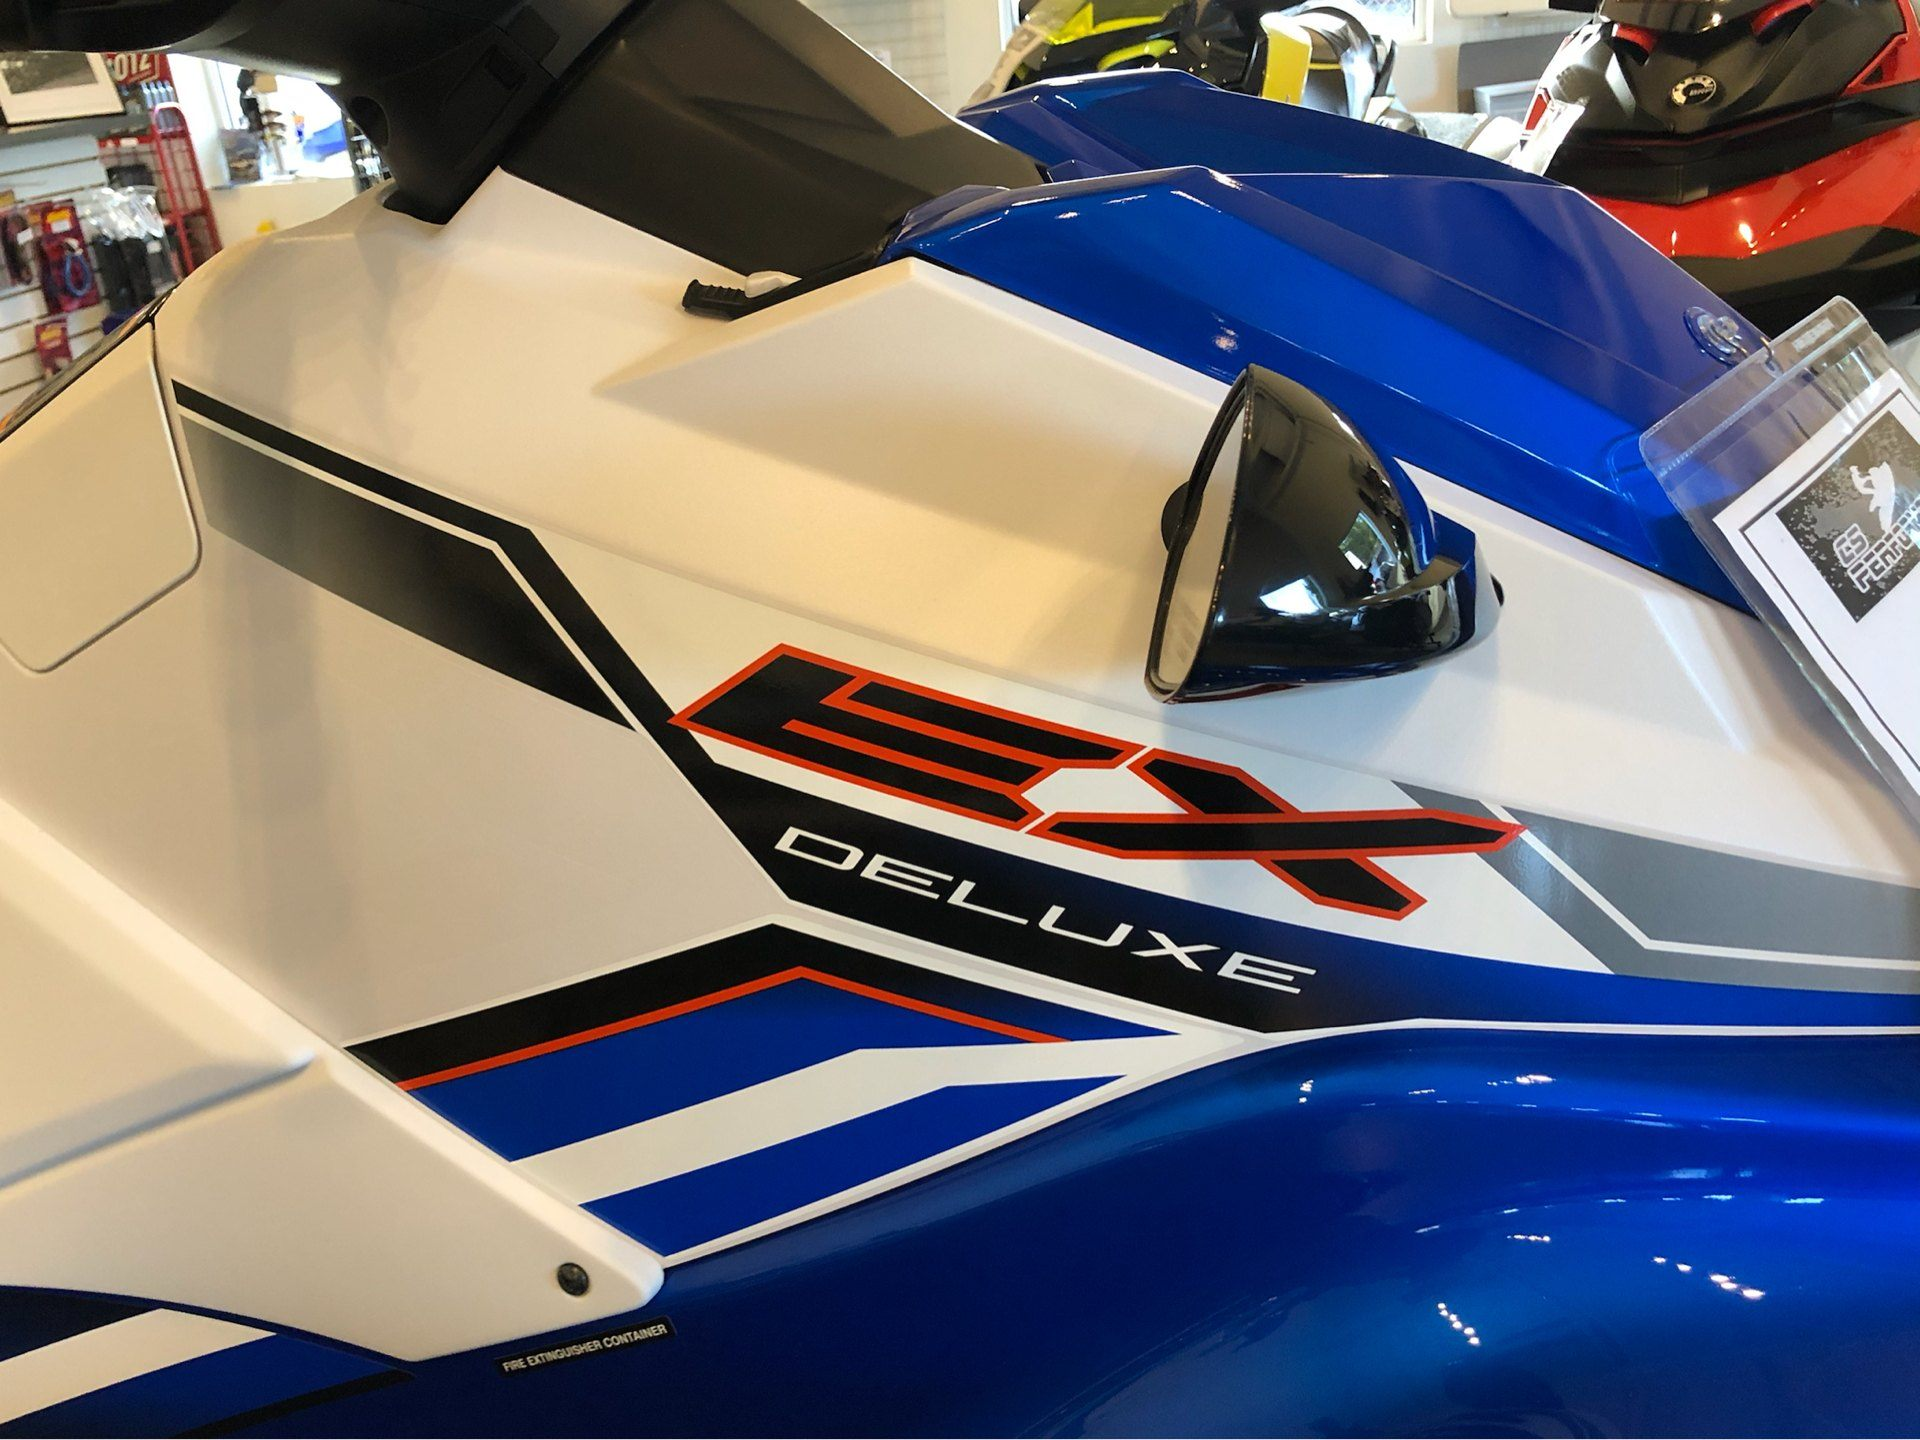 2019 Yamaha EX Deluxe in Mooresville, North Carolina - Photo 3